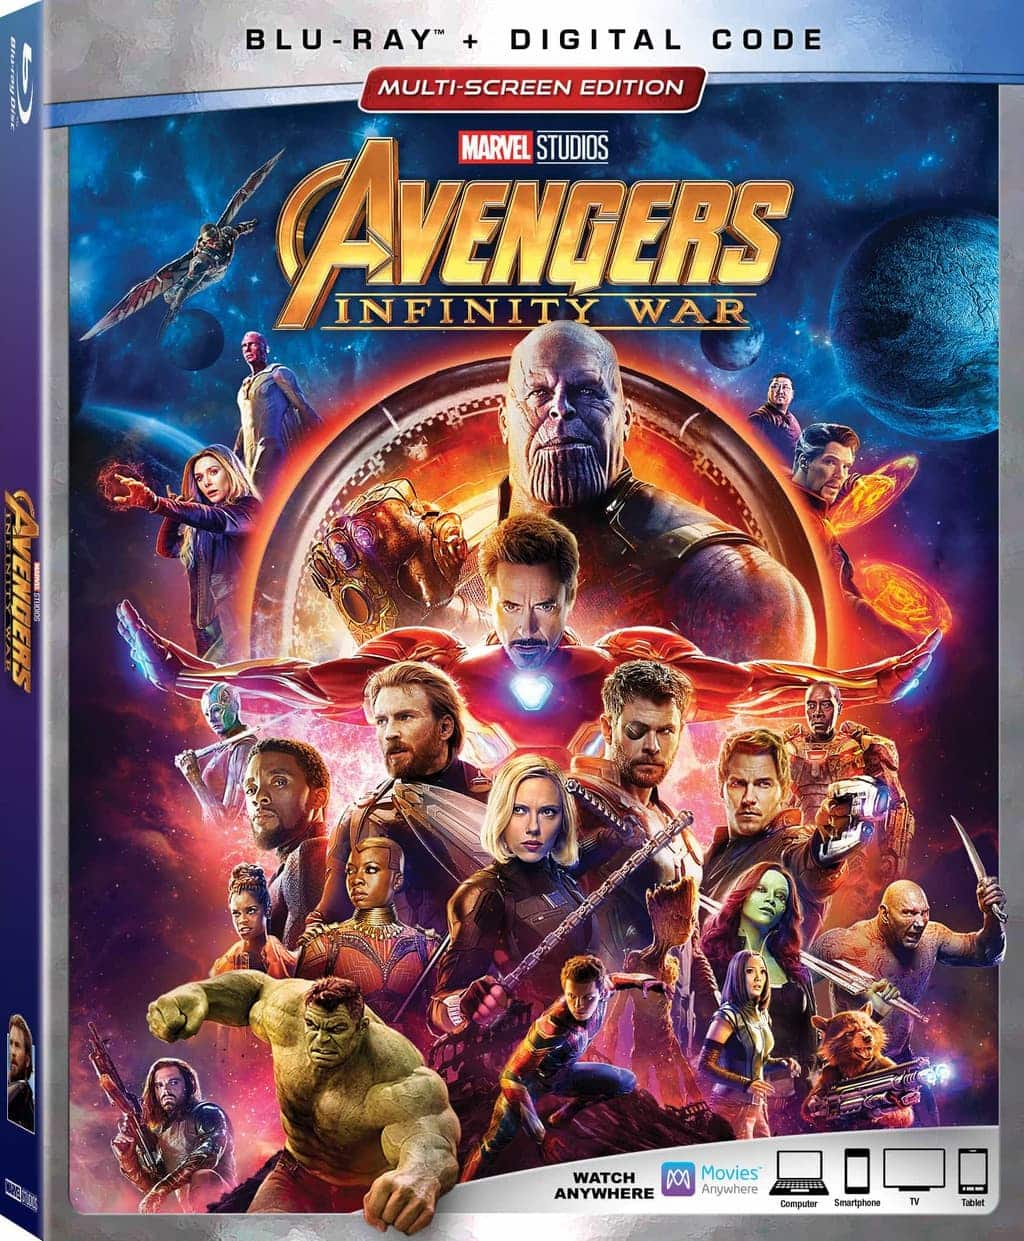 Avengers Infinity War BluRay and DVD